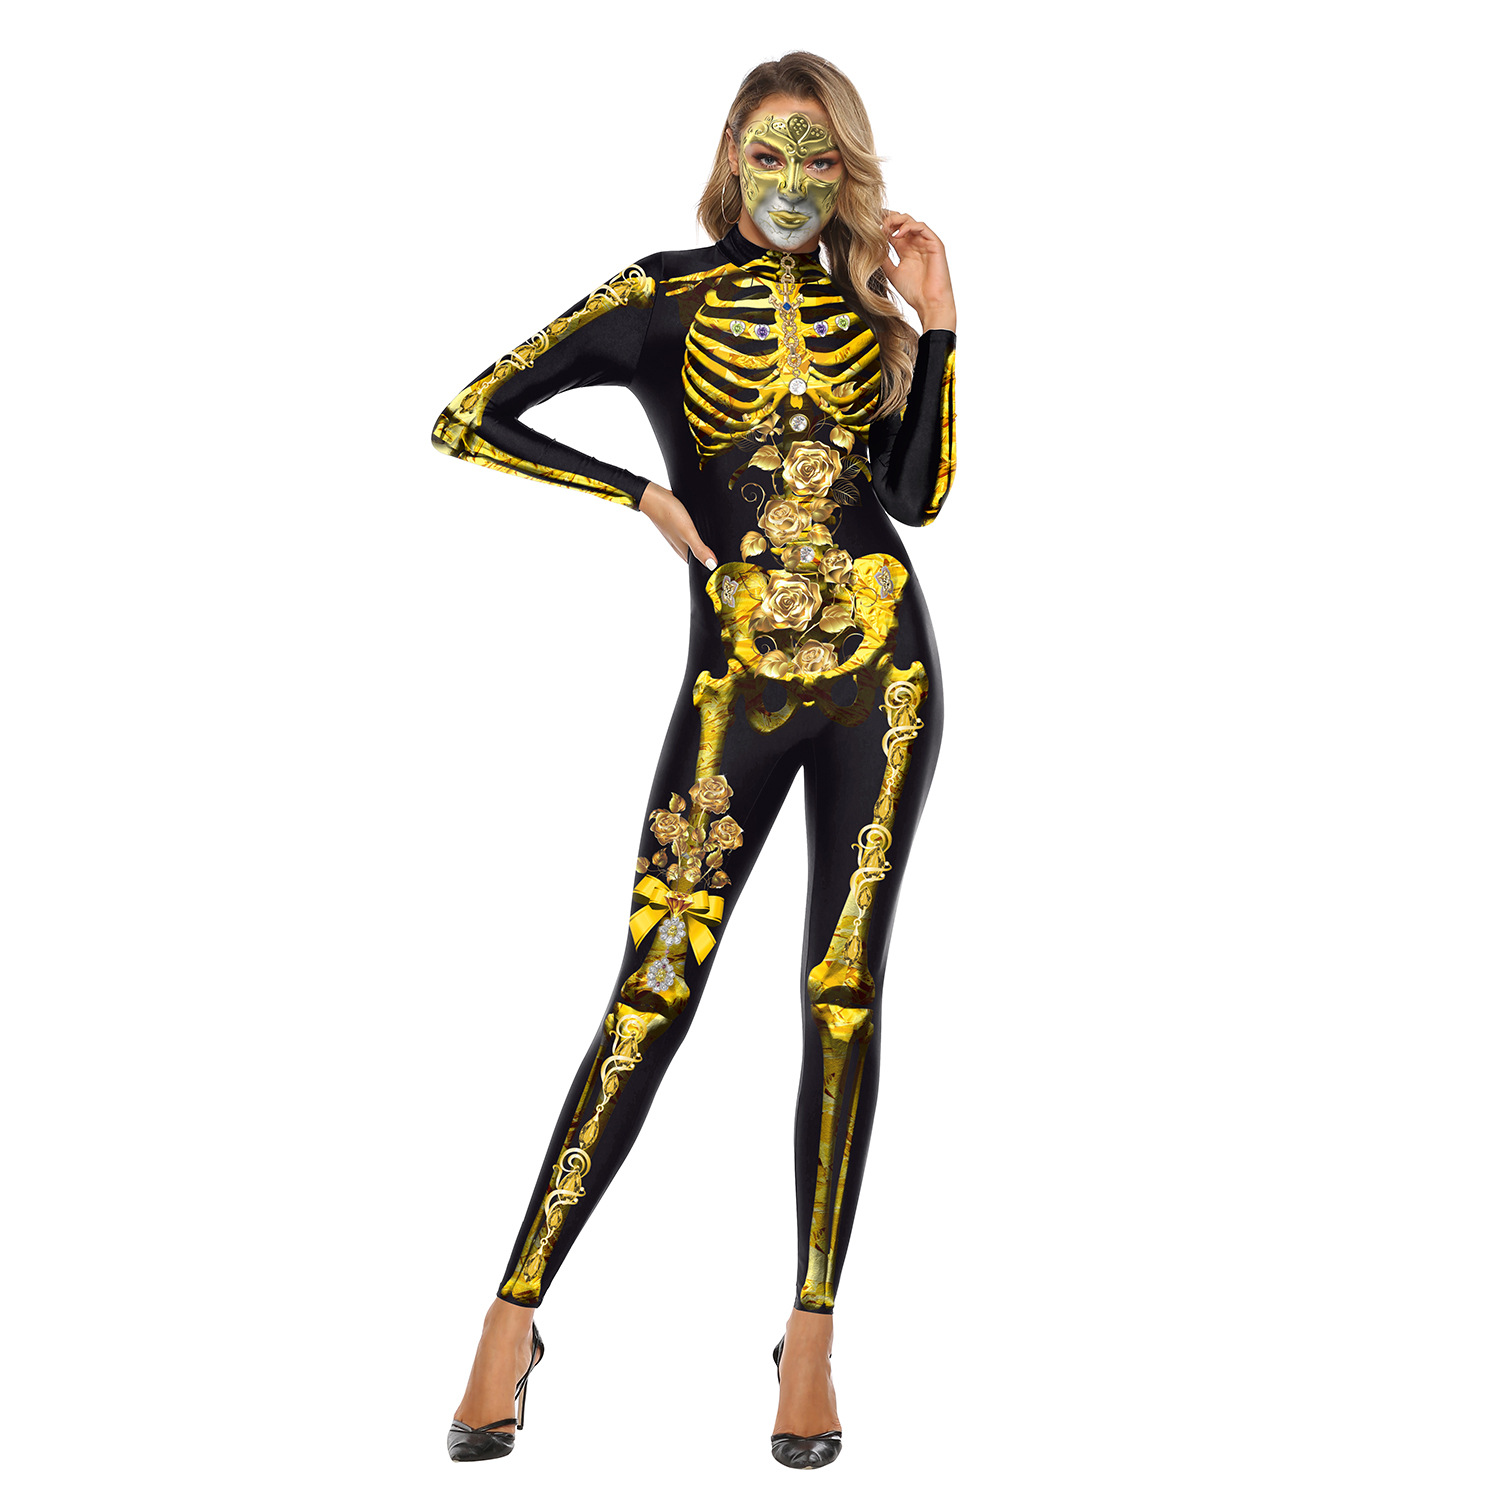 Female Skeleton Printing Jumpsuits Scary Cosplaying for Halloween Festival  WB142-001_XL